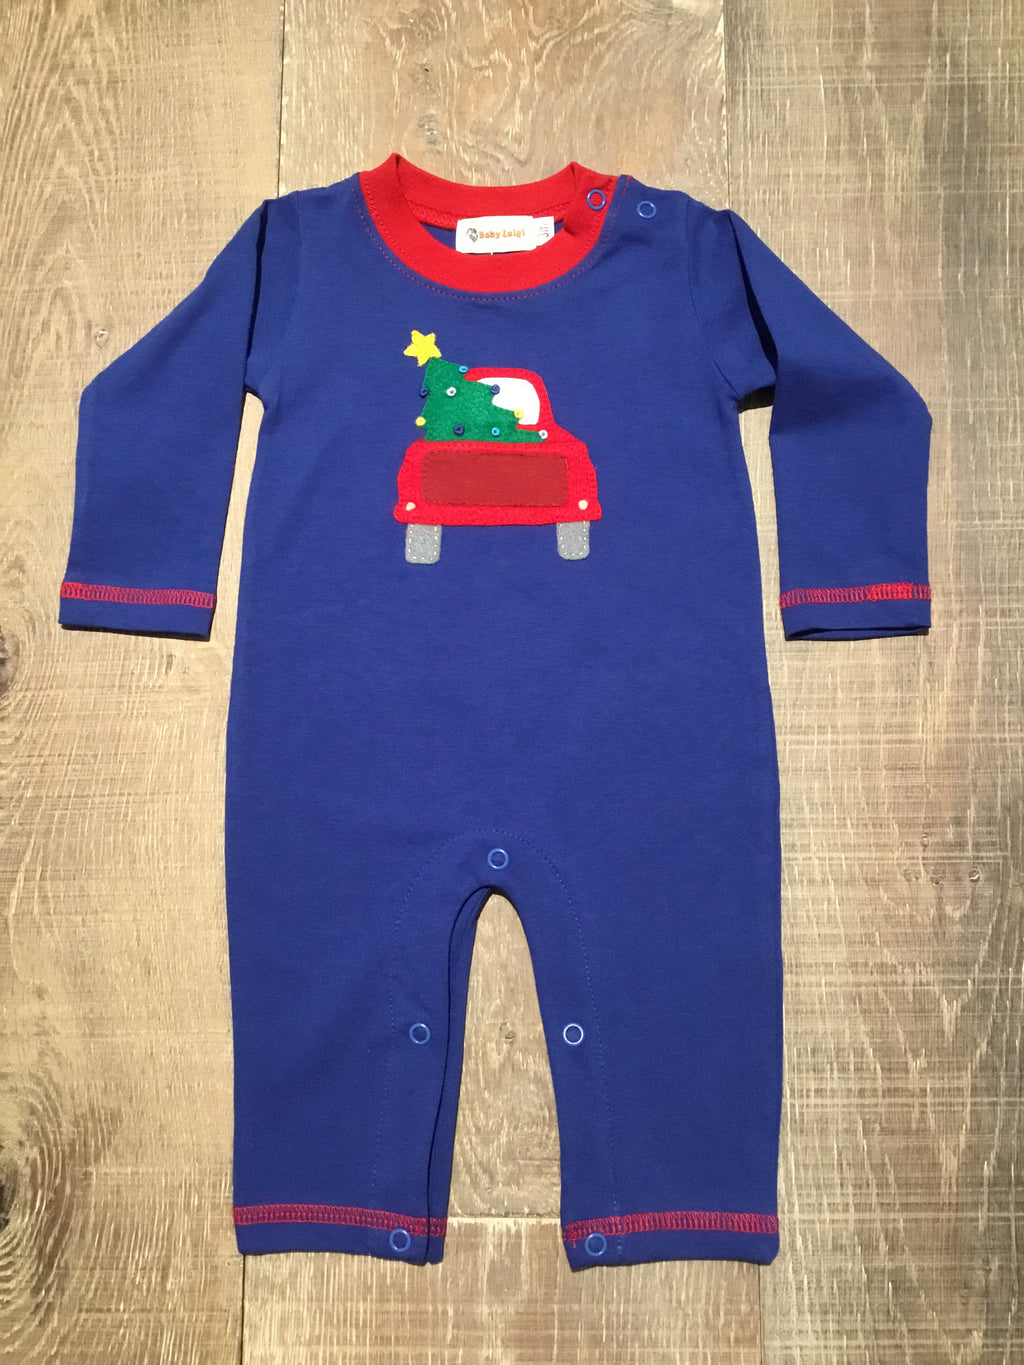 Db84UR@5p Infant Baby Girls Boys Long Sleeve Suit Comfortable This Guy is Retired Cotton Sleepwear